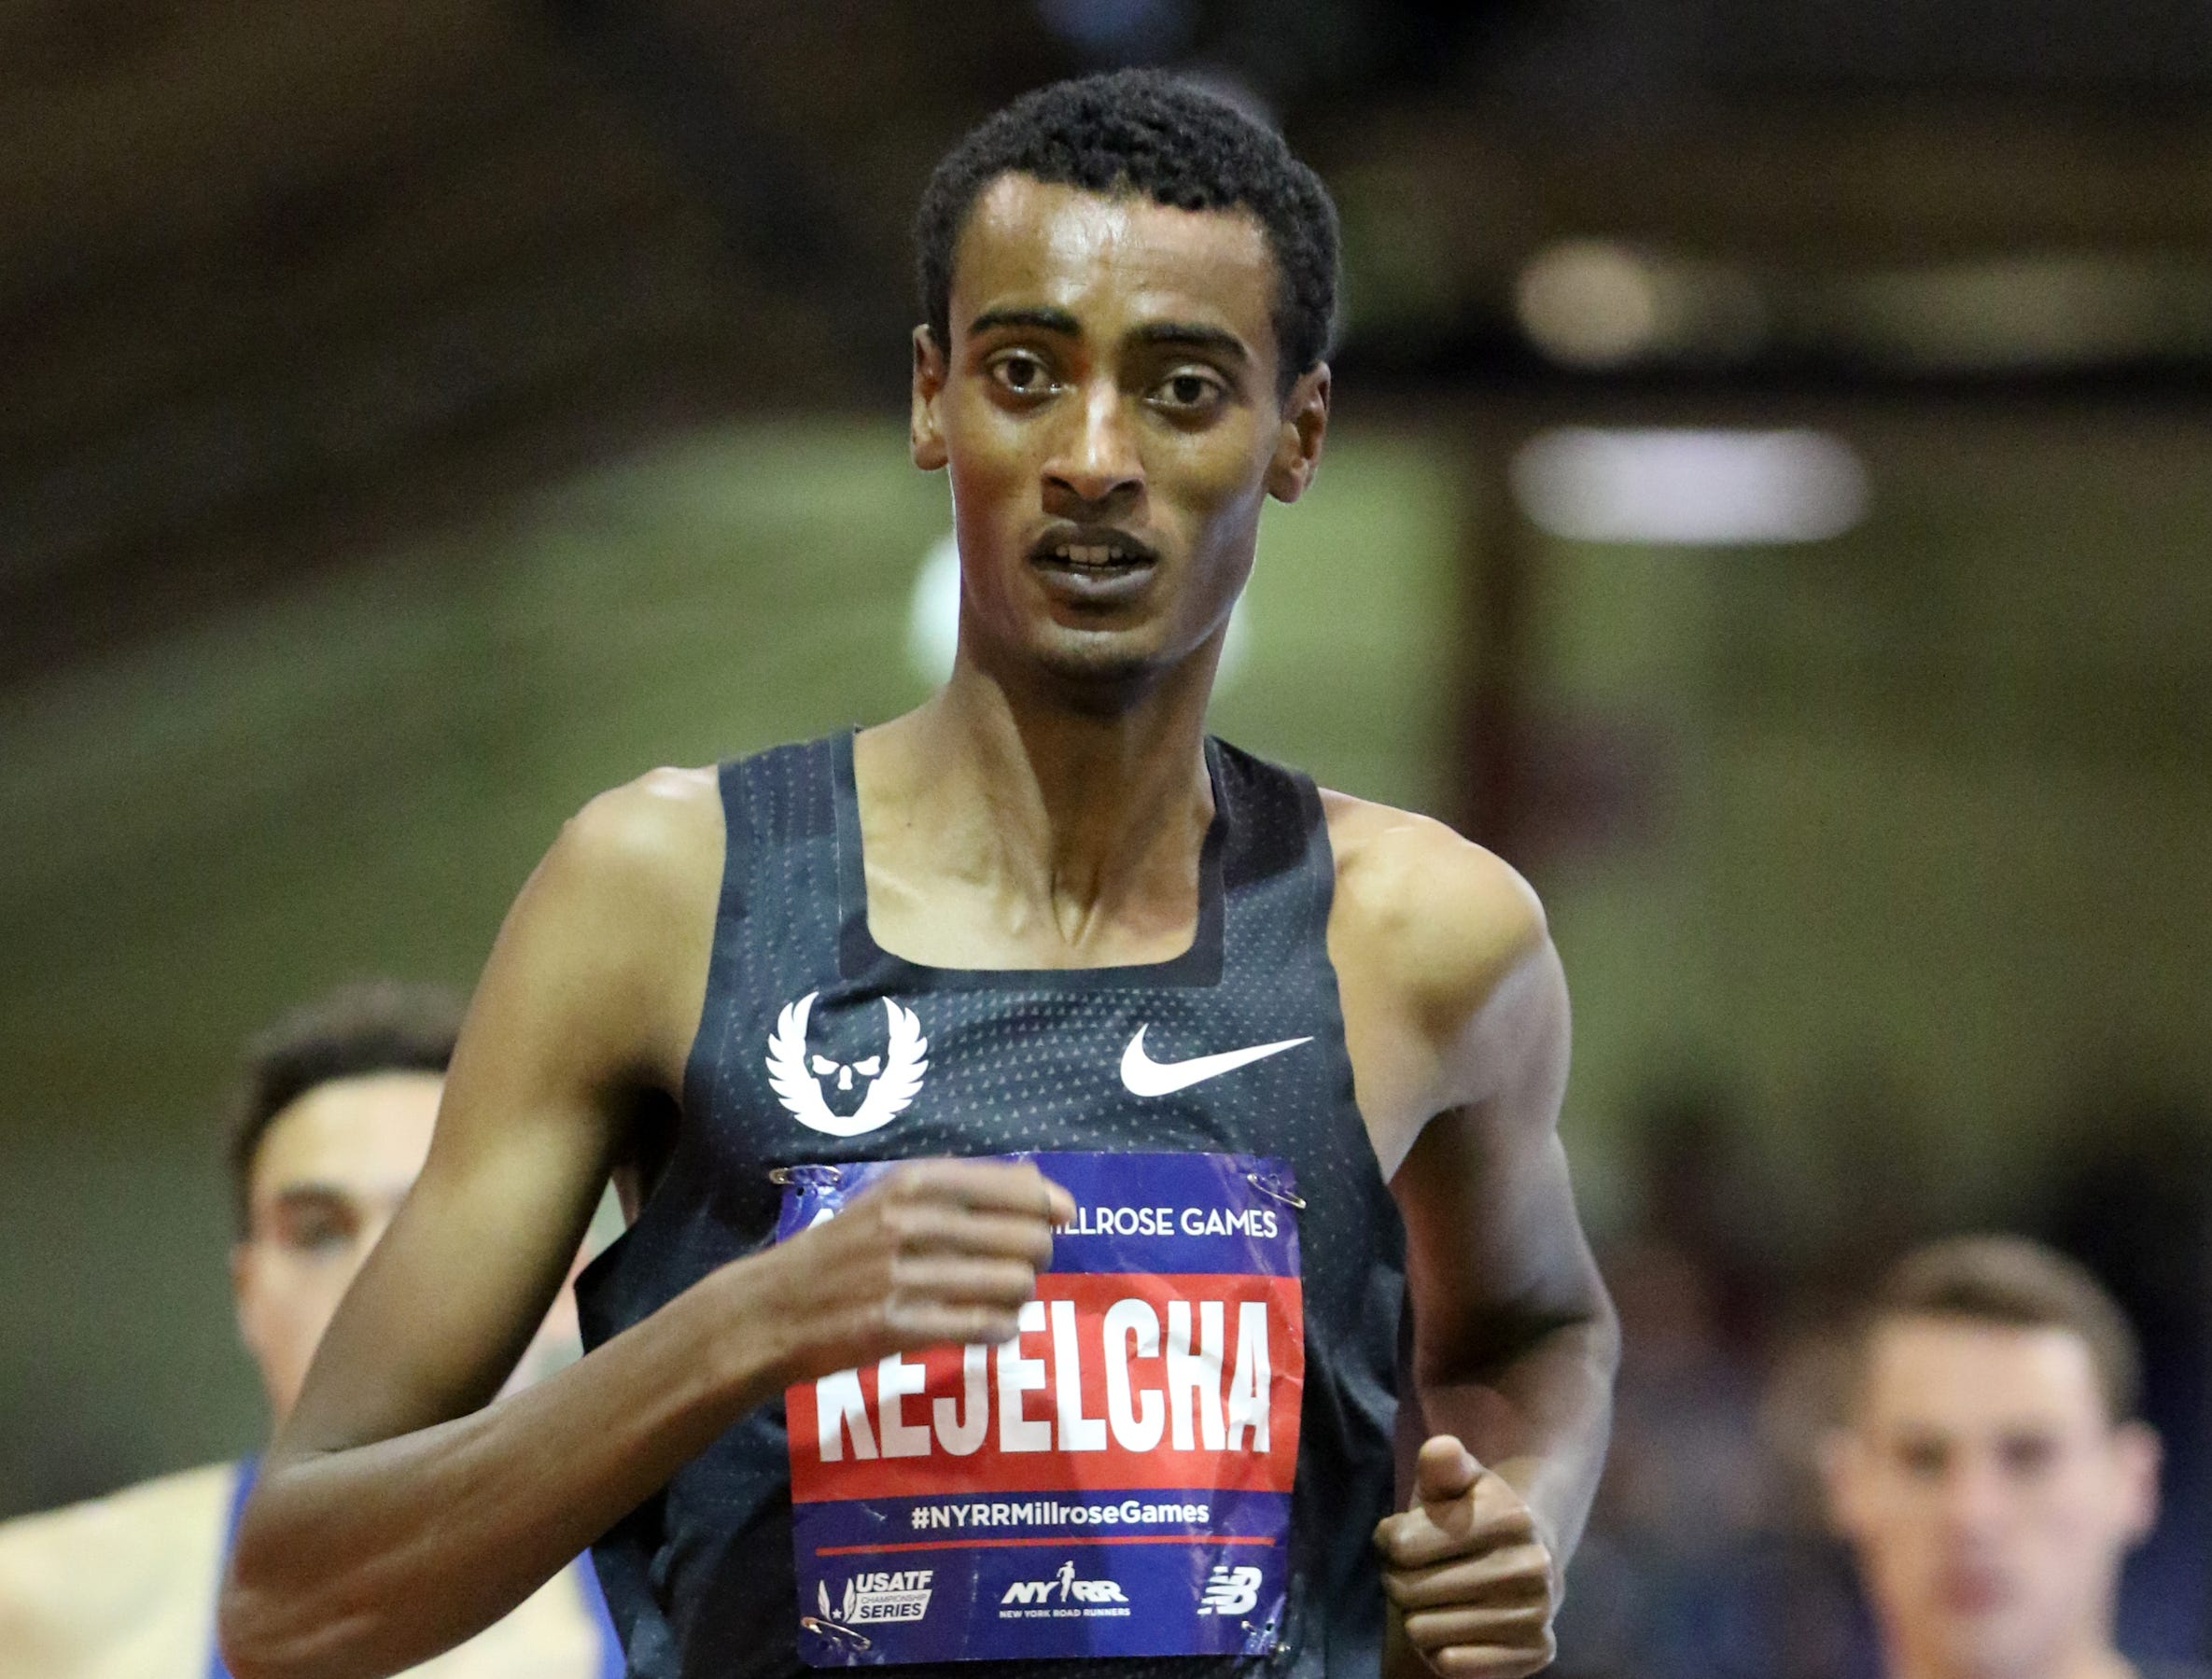 Yomif Kejelcha, is shown during the NYRR Men's Wanamaker Mile.  Kejelcha came with in a hundredth of a second from the world record.  His time was 3:48.46.  Saturday, February 9, 2019